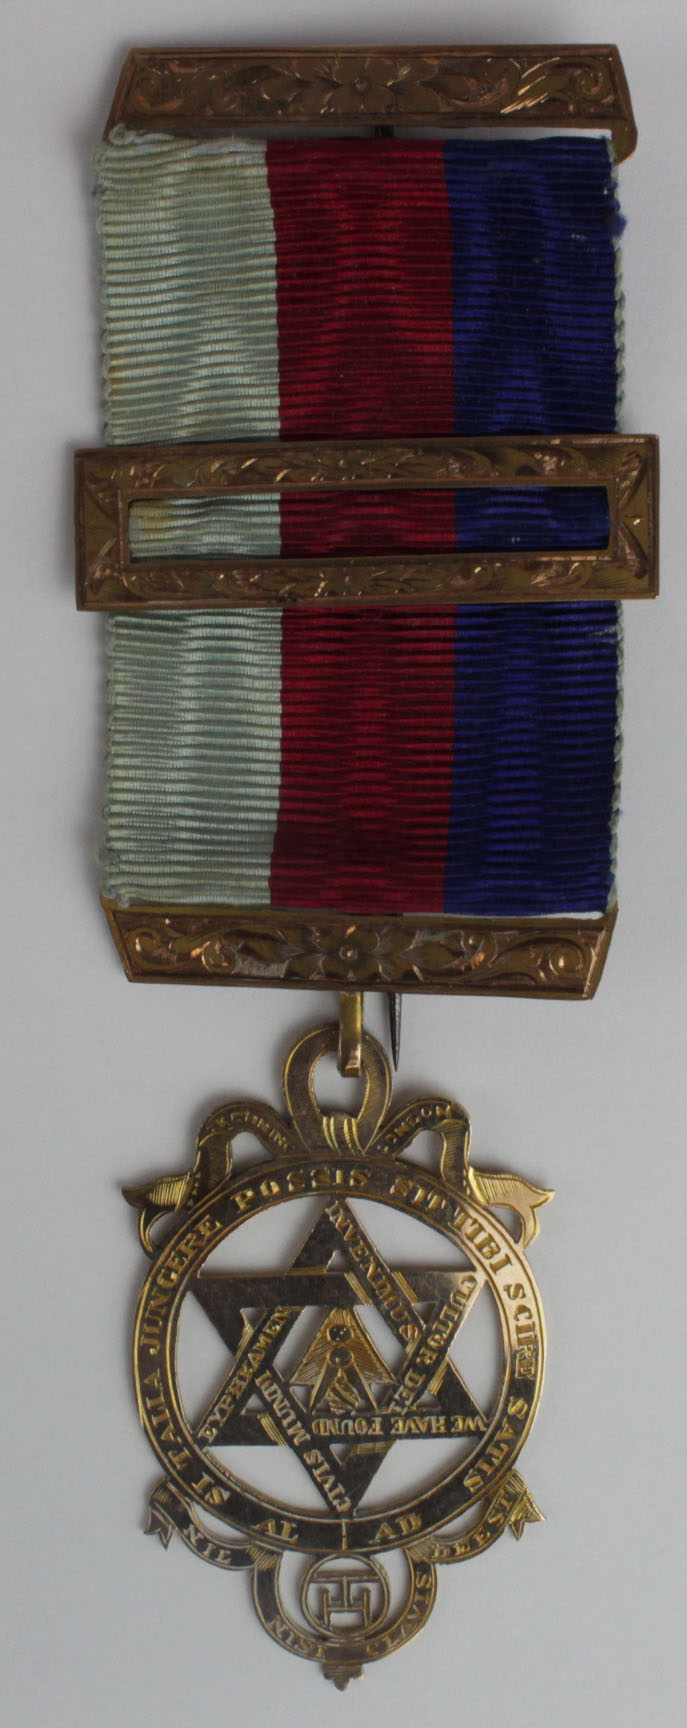 Lot 1120 - Masonic Royal Arch unmarked 9ct. gold medal/jewel. Weighs, with ribbon and base metal pin, 11.8gms.